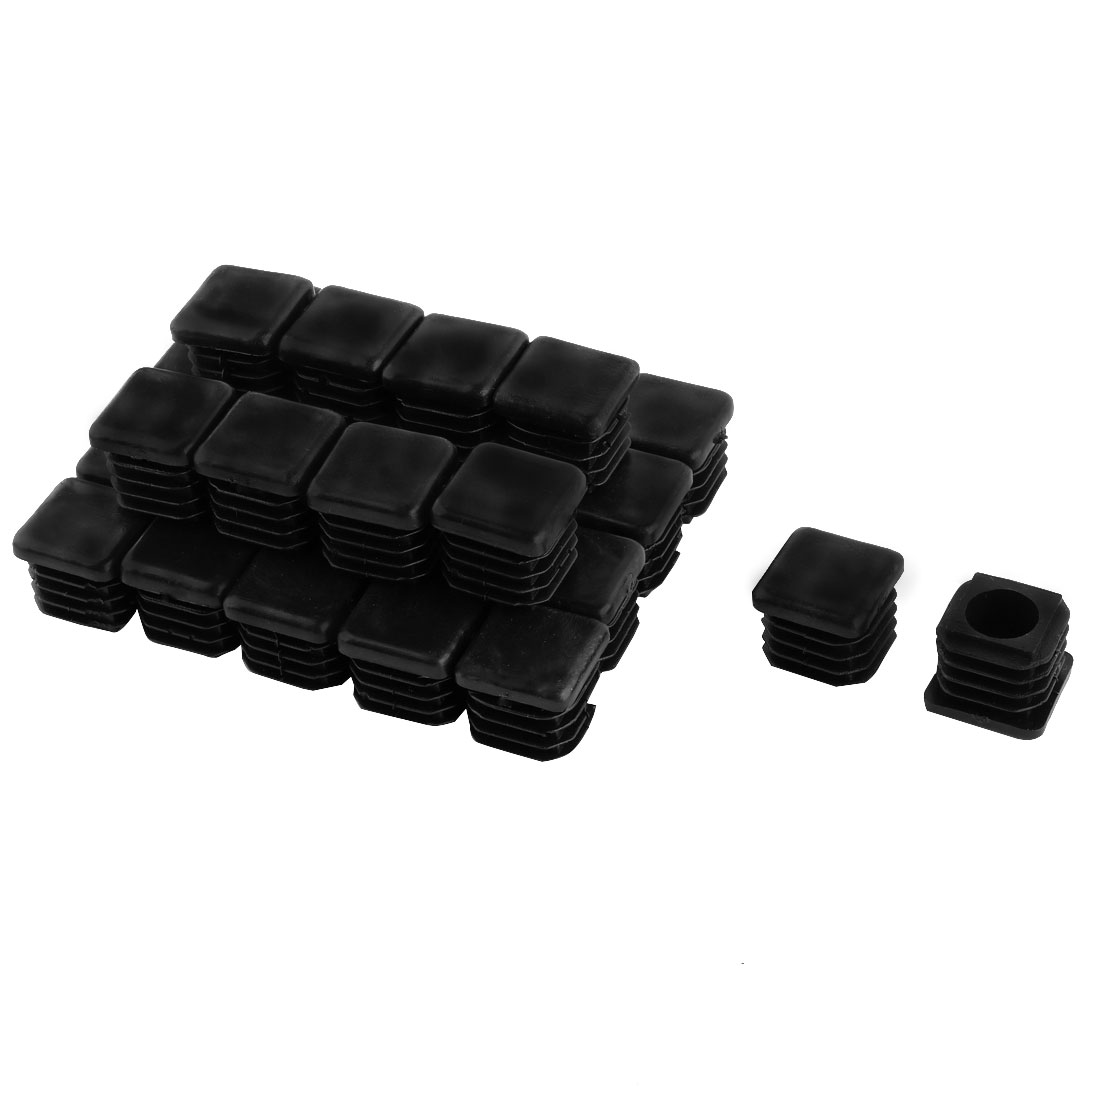 30 Pieces Black Plastic Square Blanking End Caps Tubing Tube Inserts 19mm x 19mm